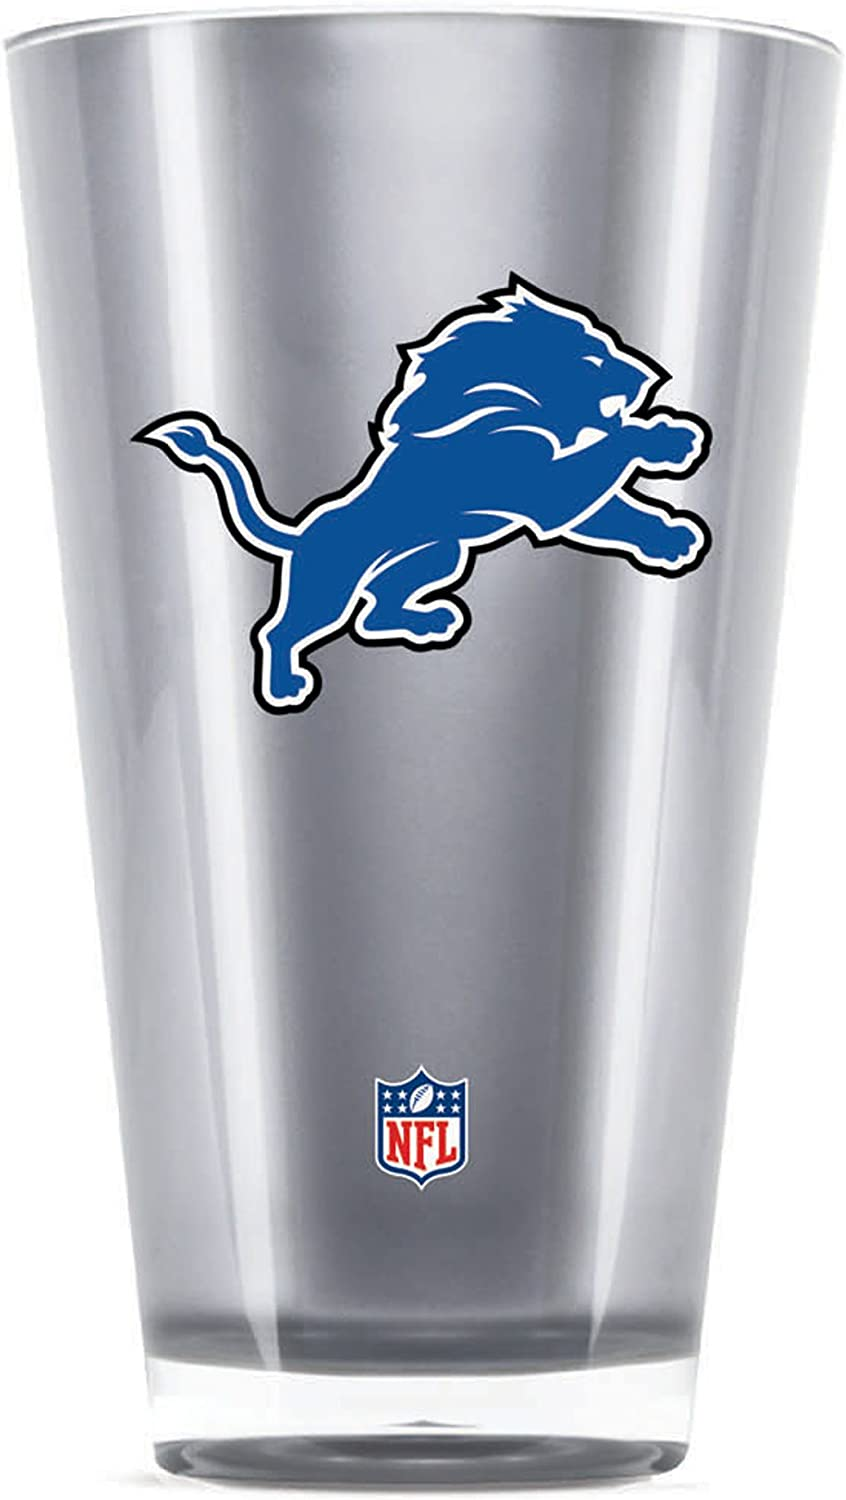 NFL Detroit Lions 20oz Insulated Acrylic Tumbler